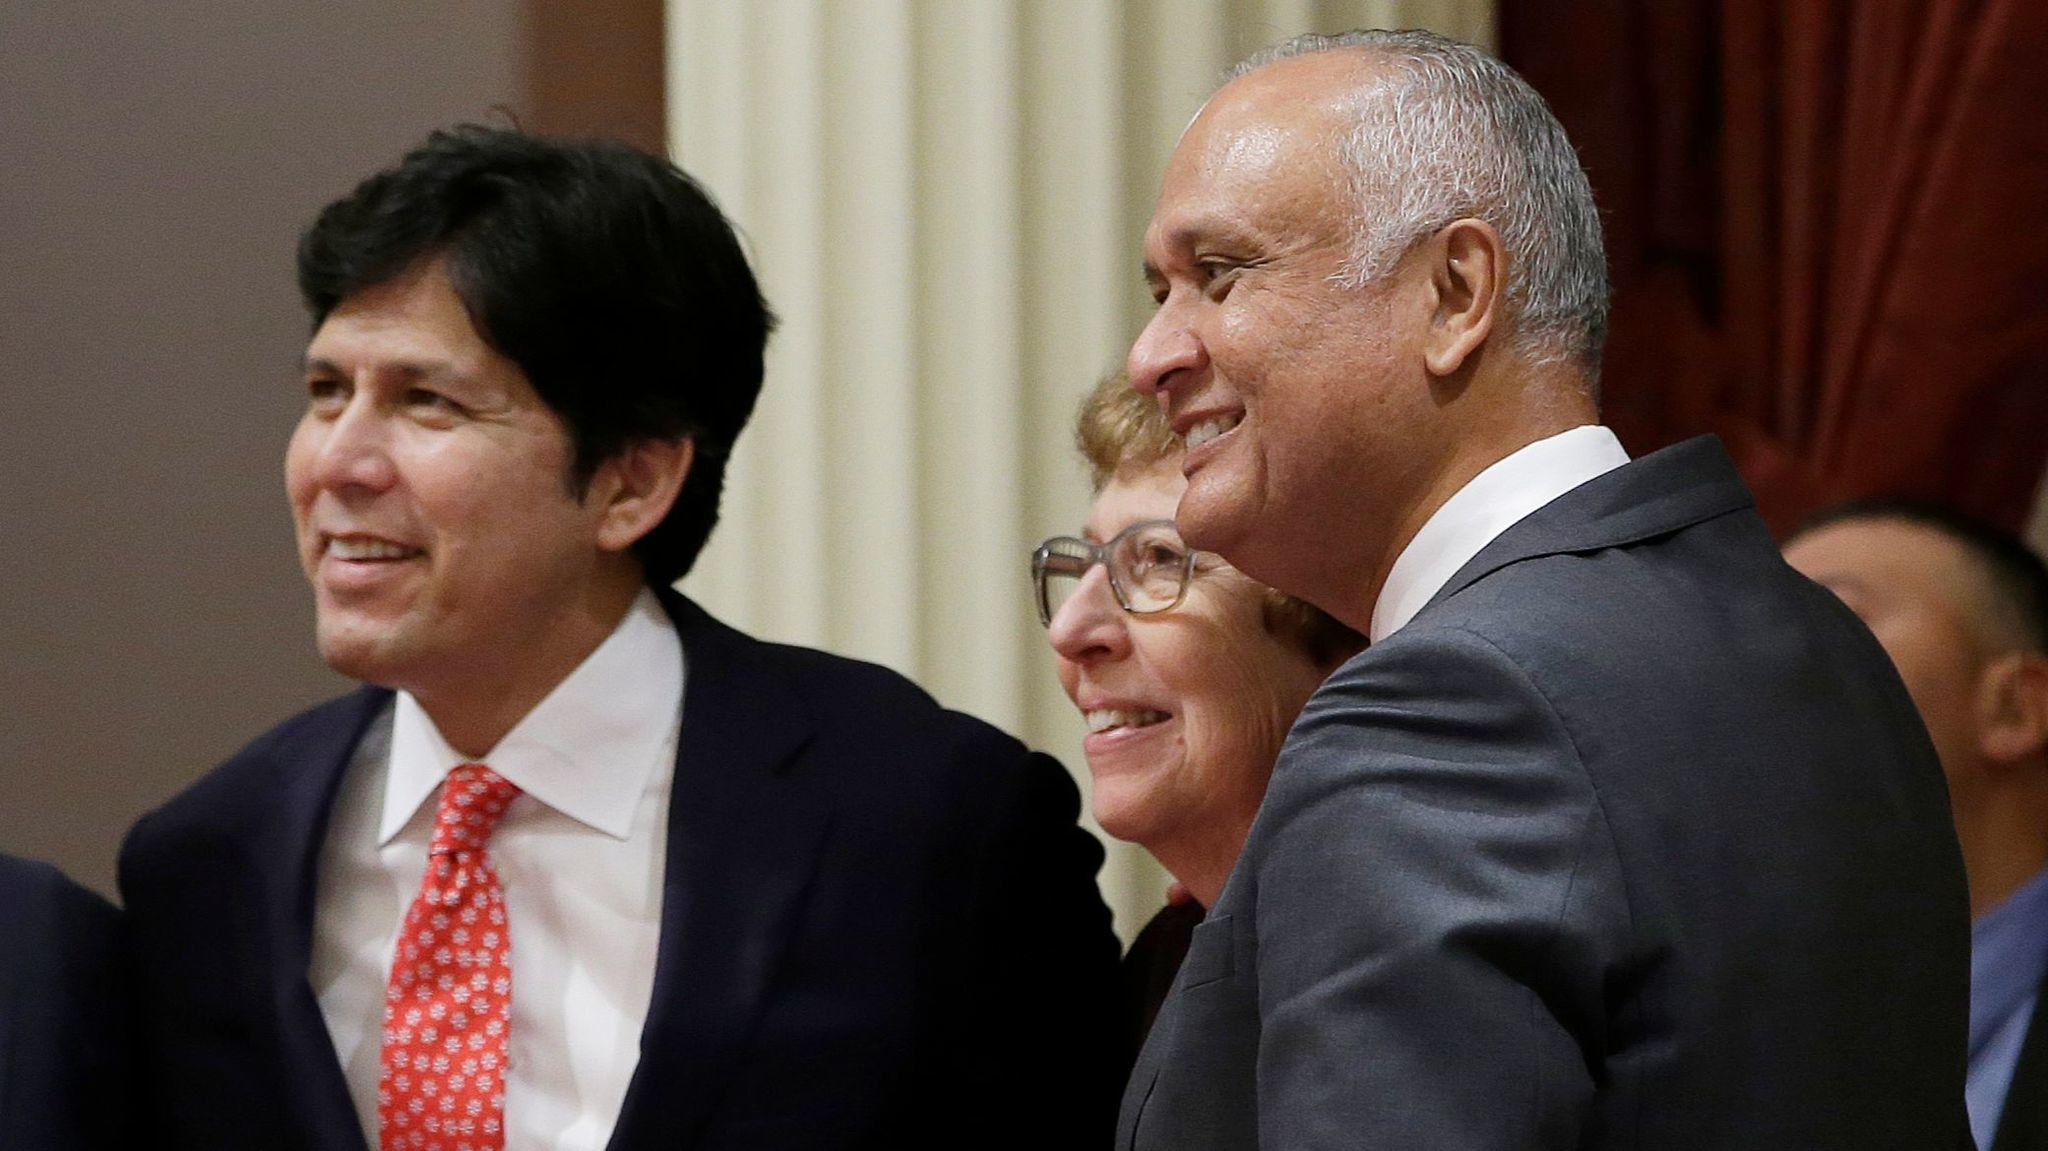 State Sen. Ed Hernandez of Azusa, right, smiles as he joins Senate President Pro Tem Kevin de León and then-Sen. Lois Wolk of Davis in 2016.